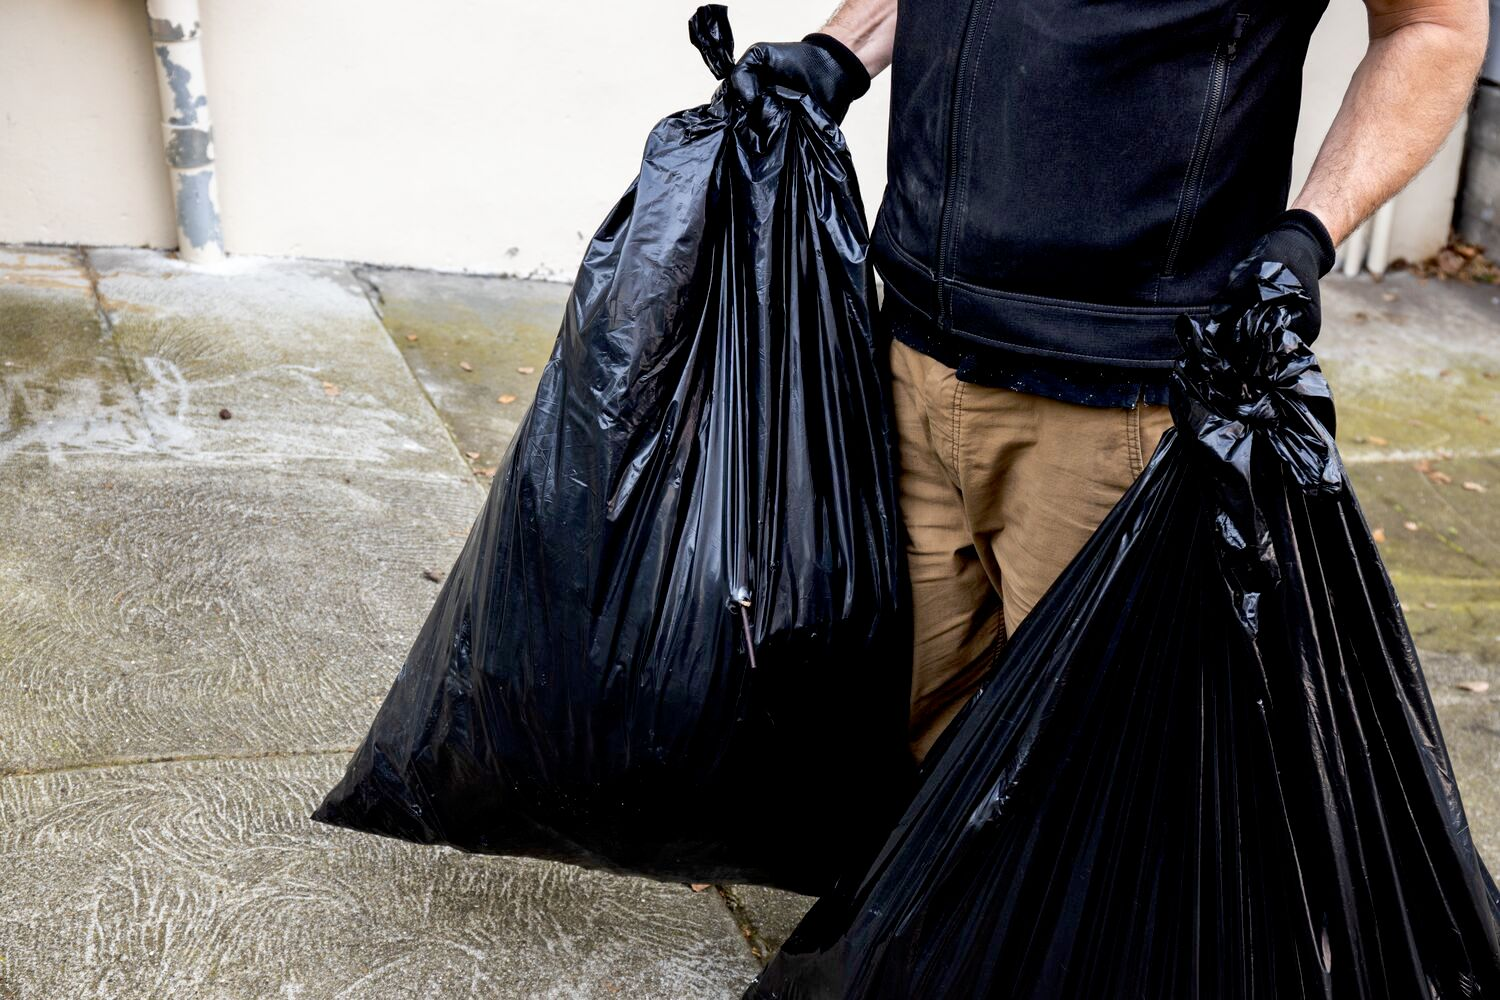 man carrying two trash bags